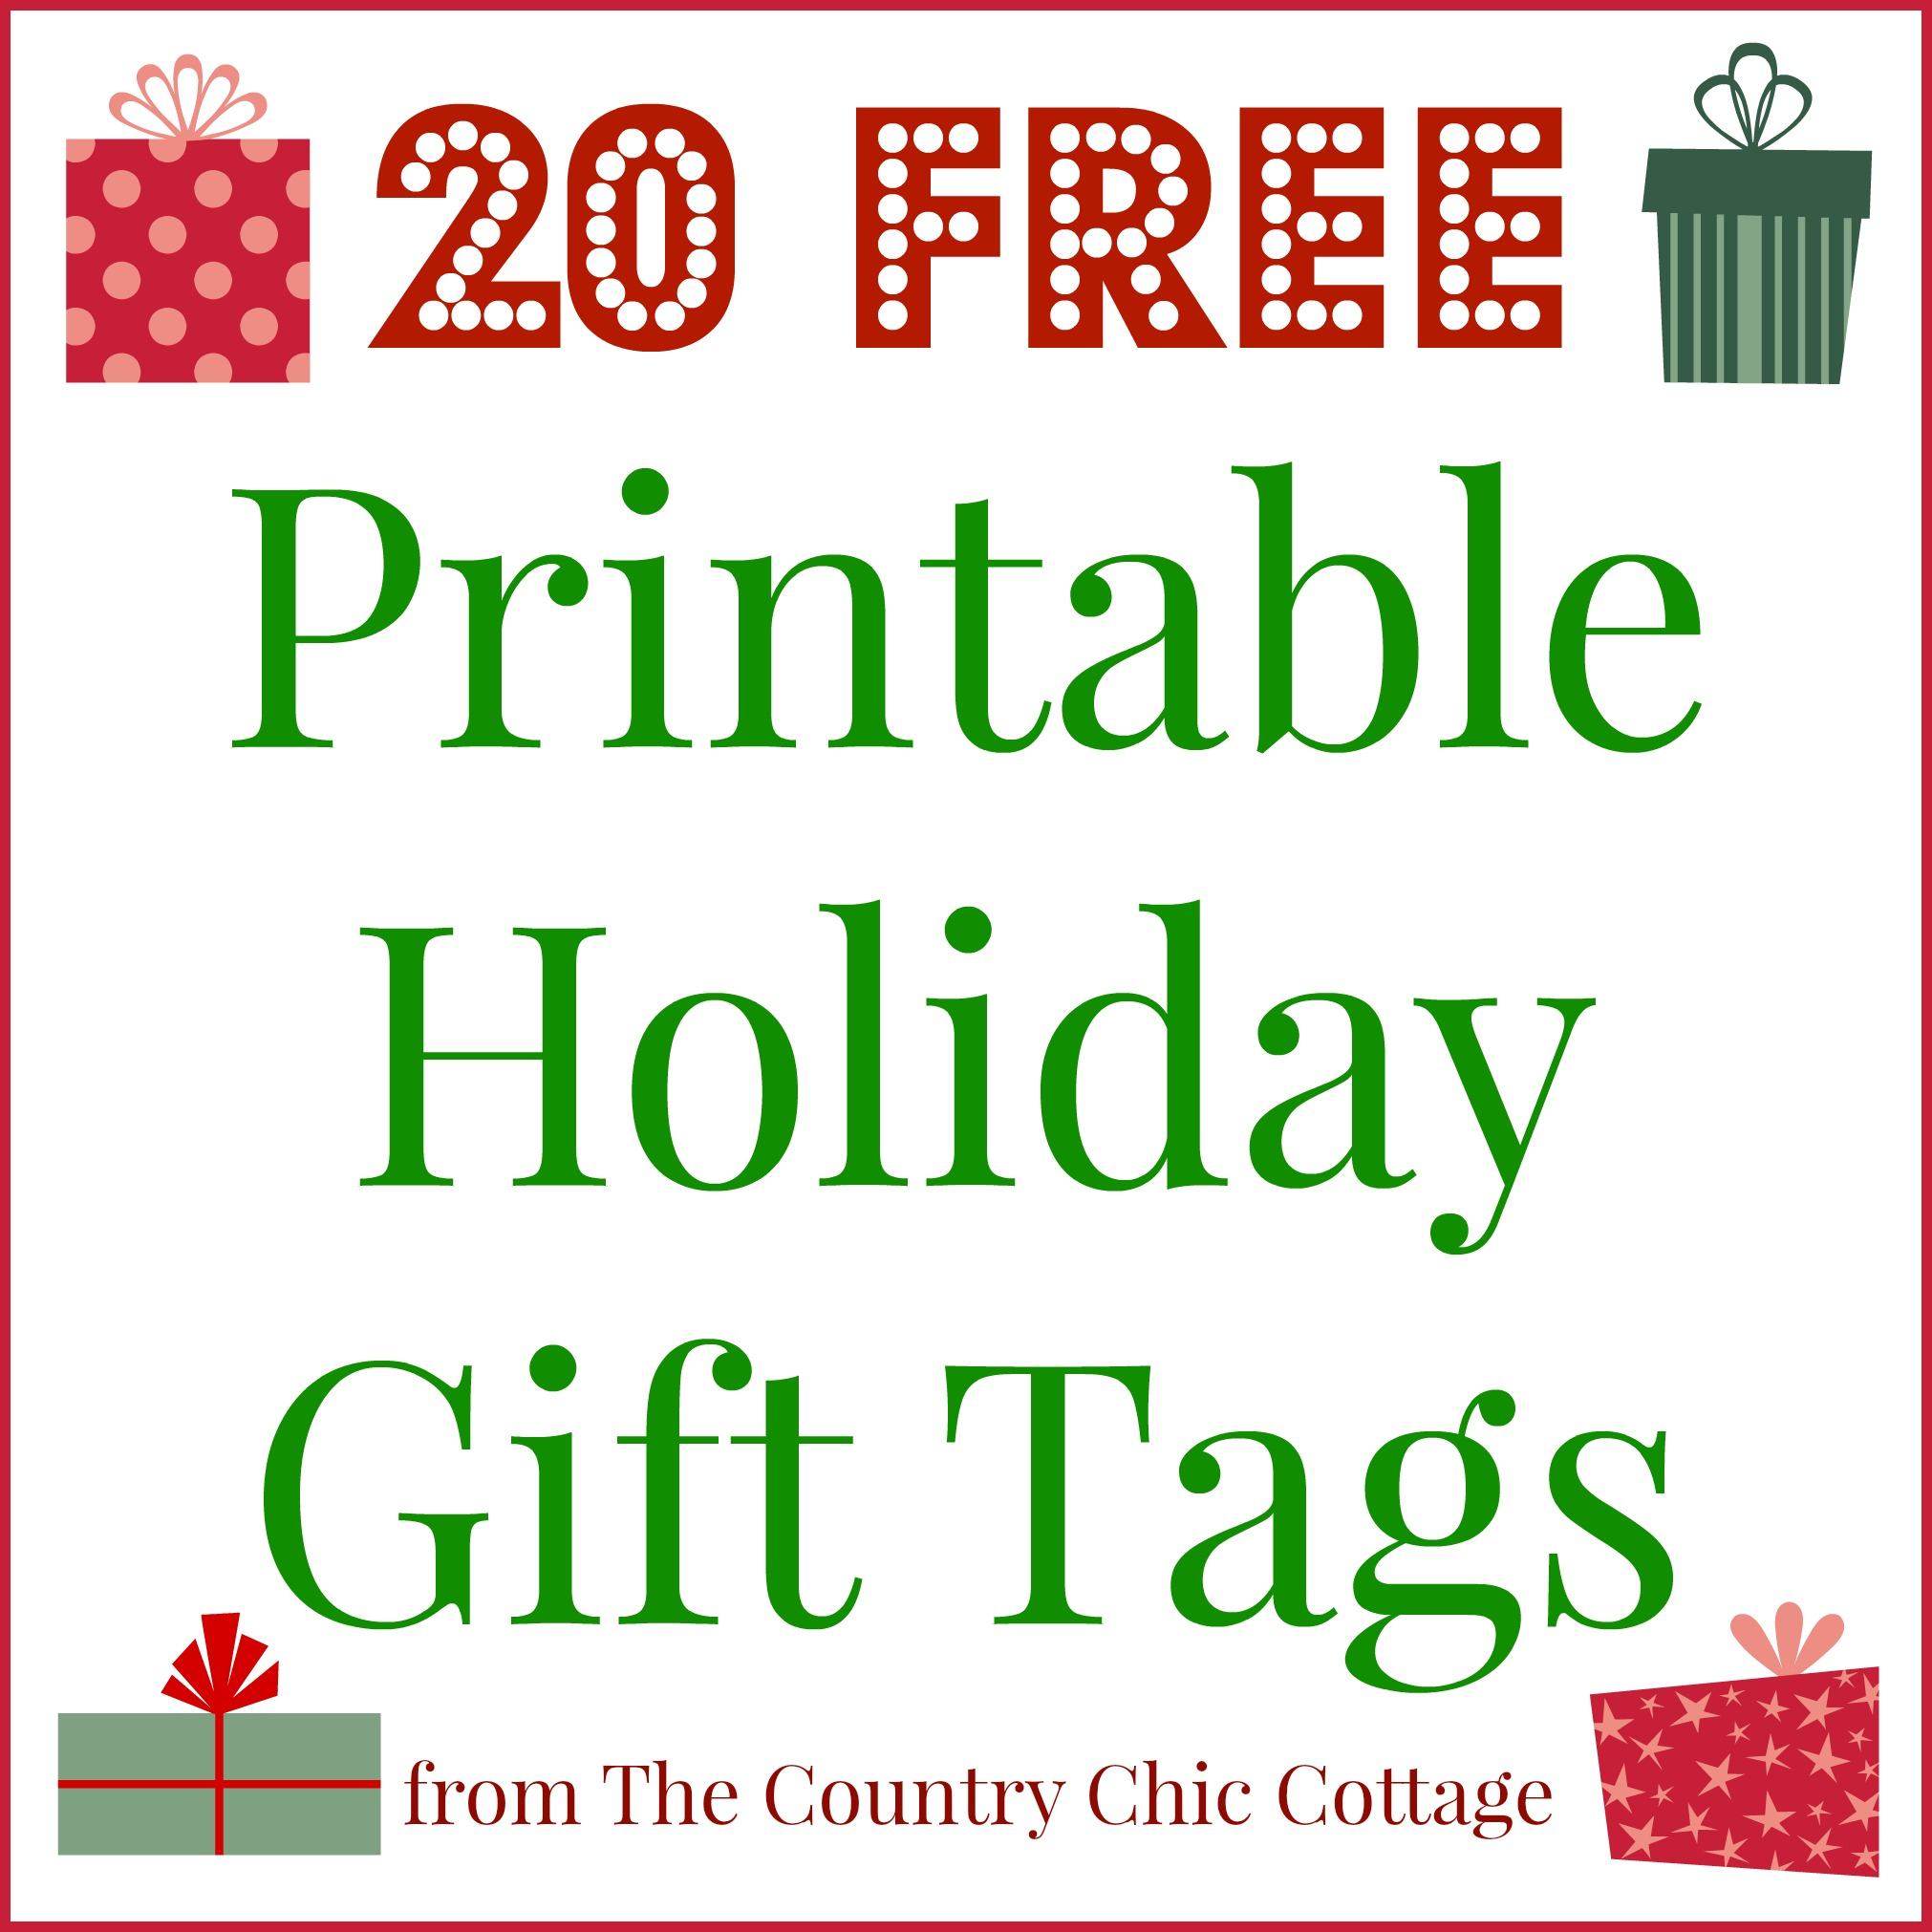 20 Printable Holiday Gift Tags (For Free!!) - The Country Chic Cottage - Free Printable Holiday Labels